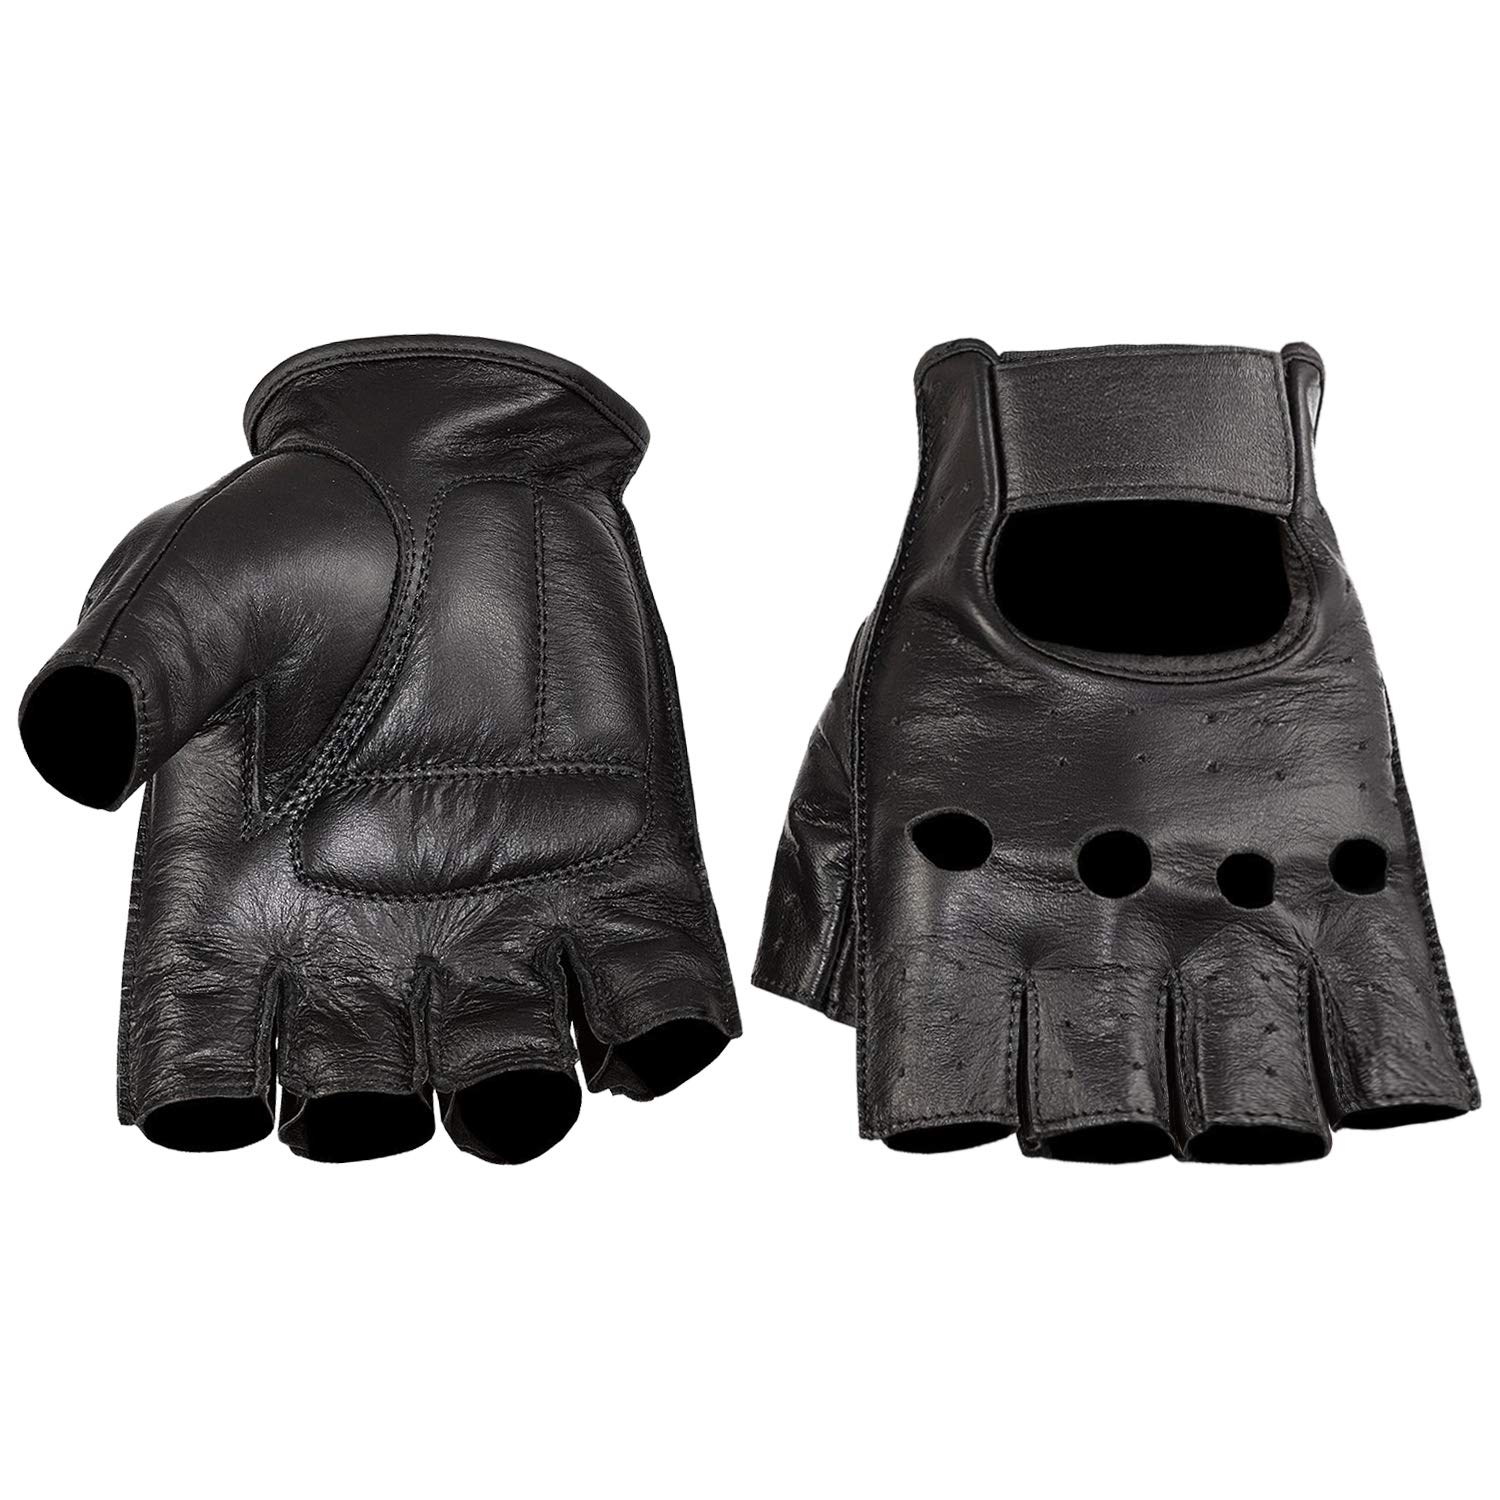 Viking Cycle Premium Heavy Duty Half Finger Padded Genuine Black Leather Motorcycle Riding Gloves For Men (Black, M)